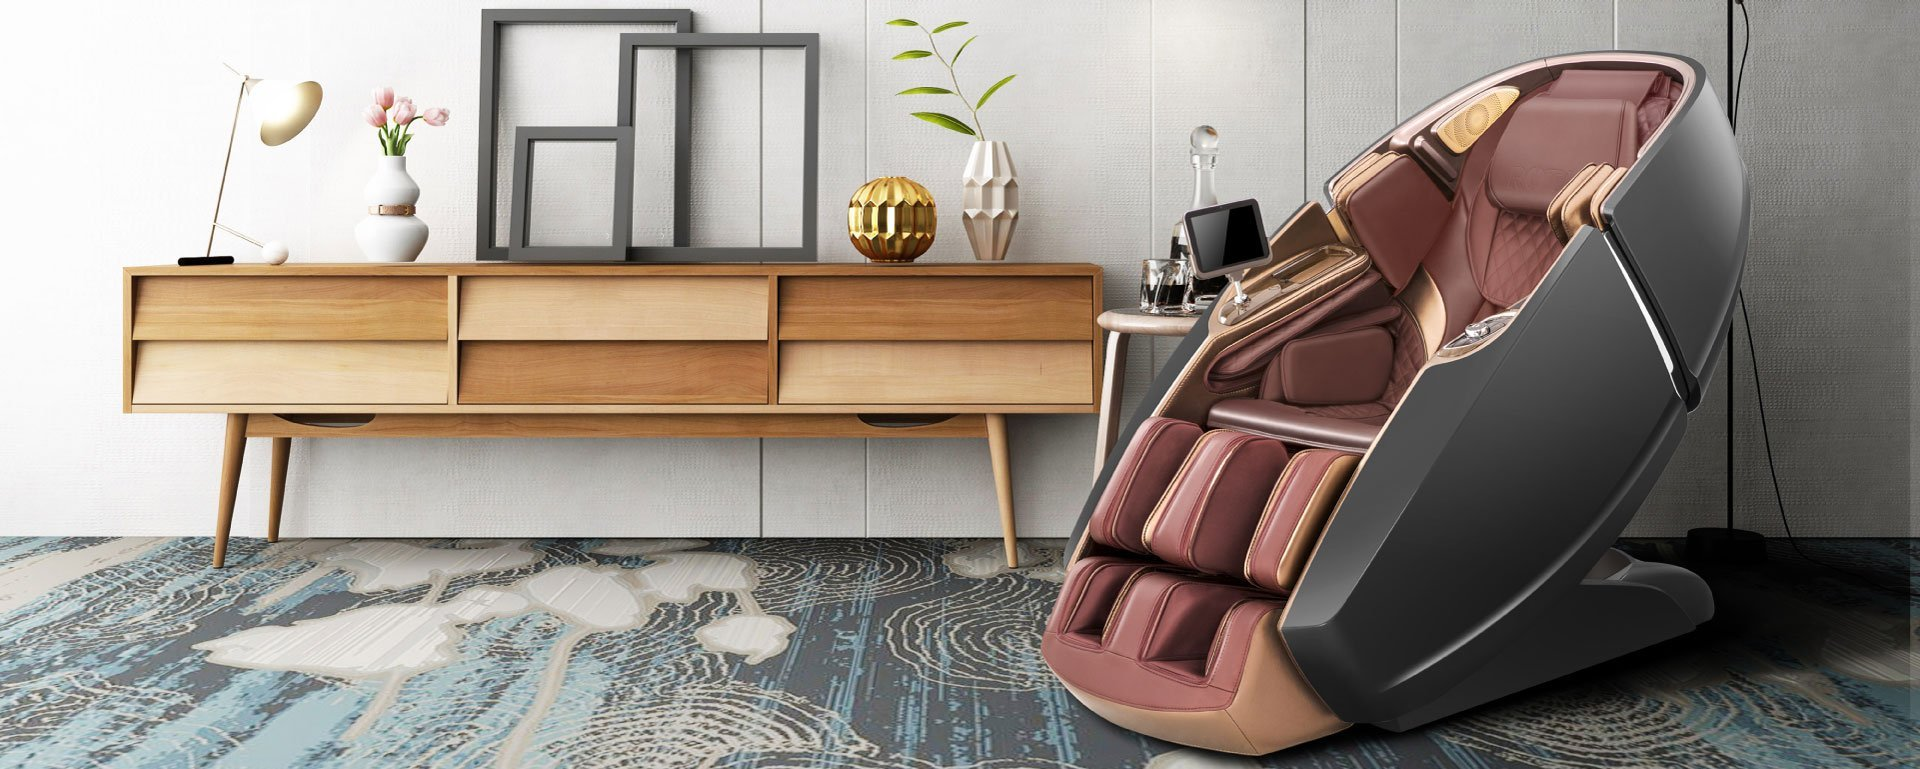 Zenith Massage Chair in a room next a table